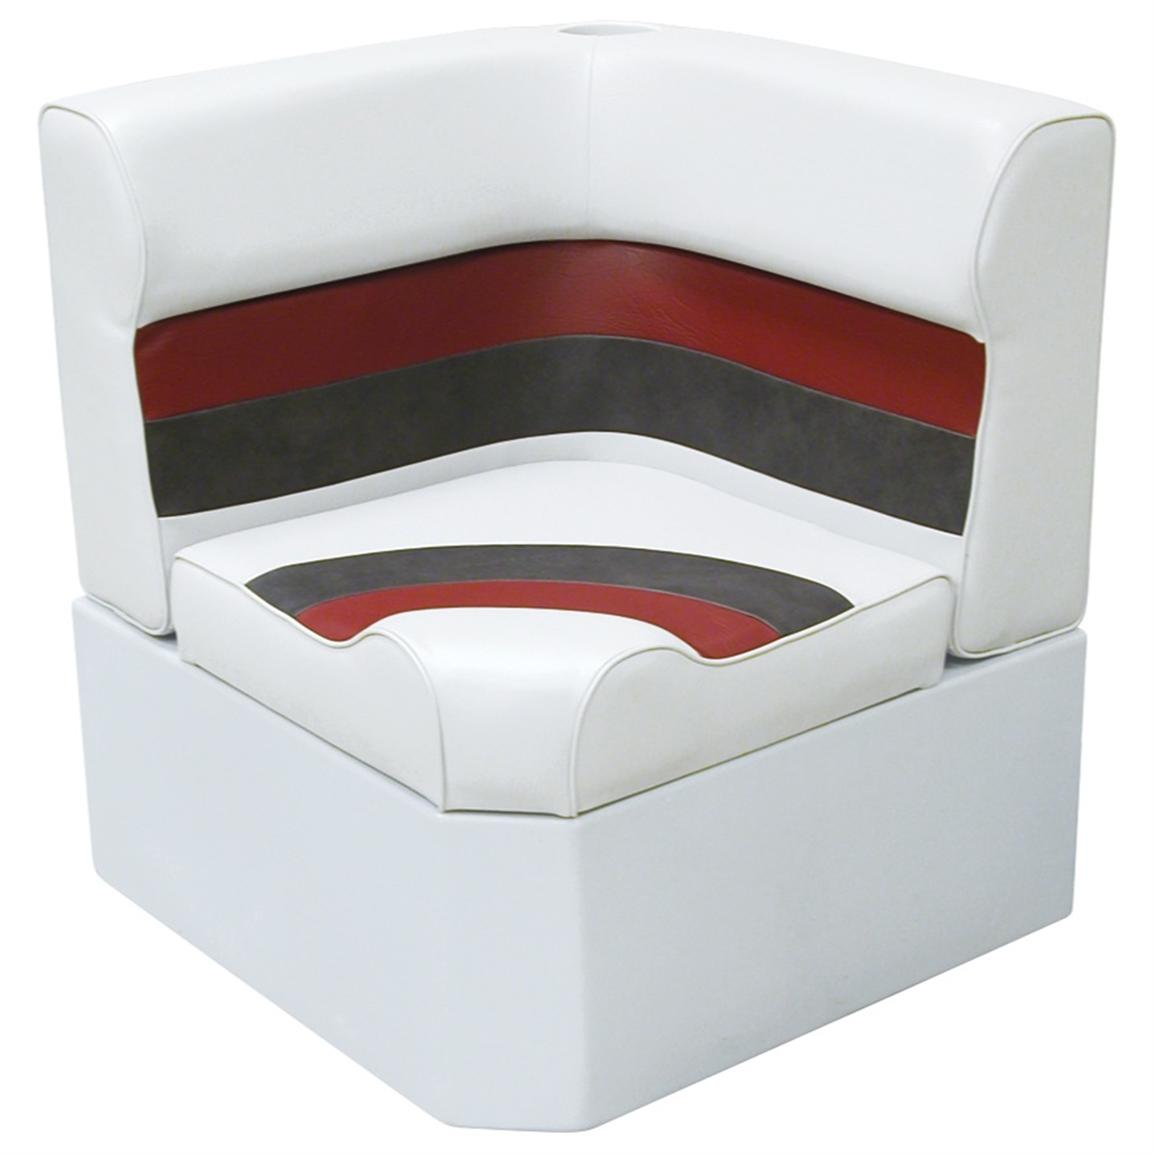 Wise® Deluxe Corner Pontoon Seat, White / Charcoal / Red